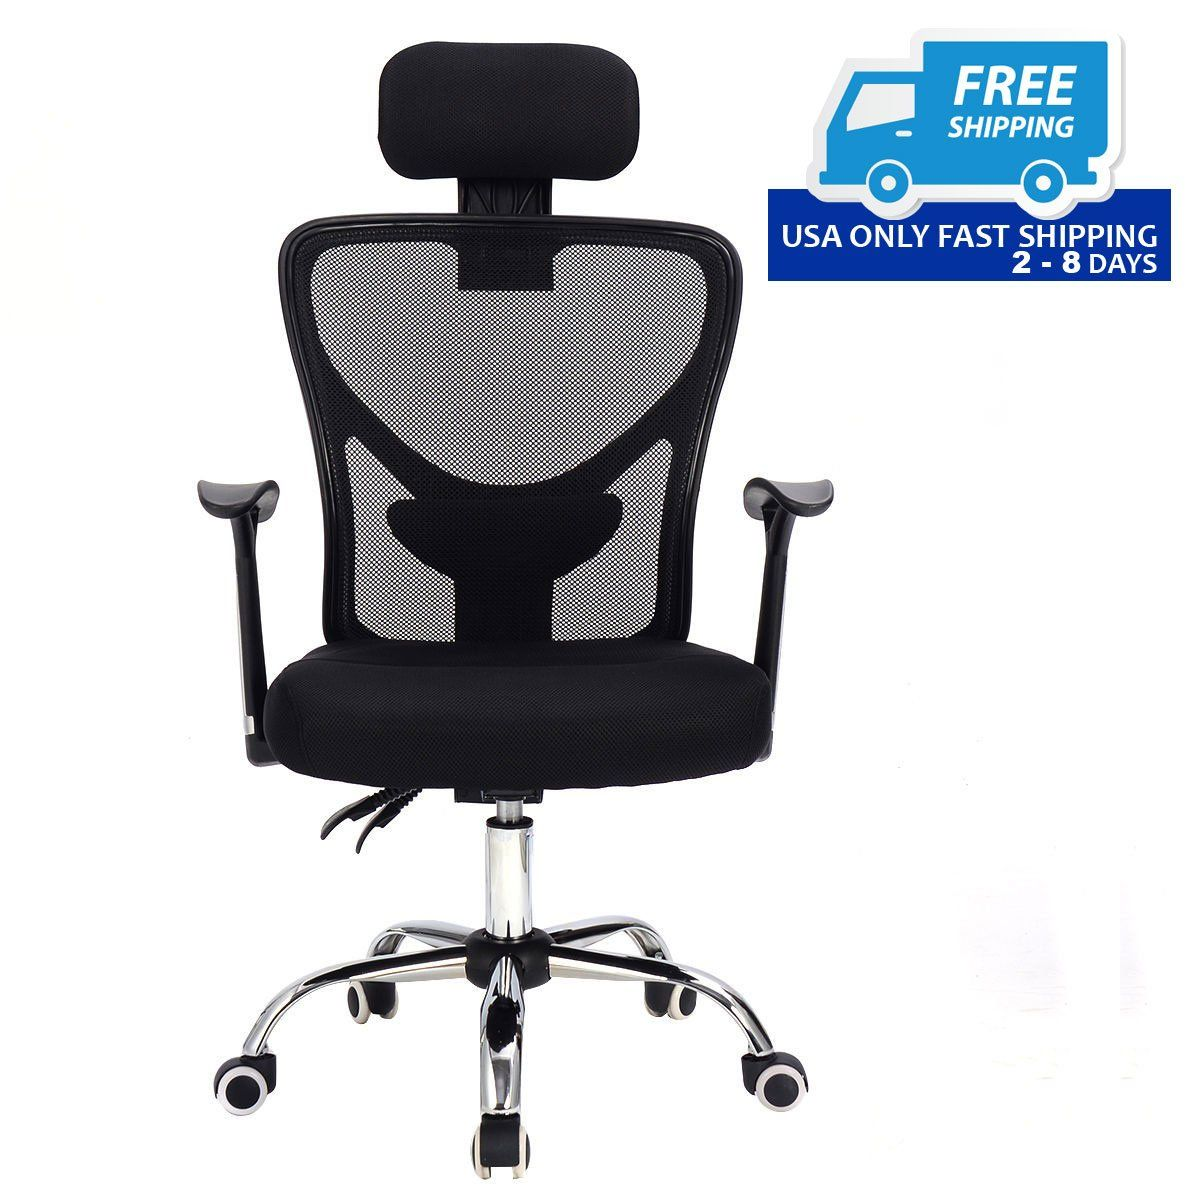 Ergonomic Mesh High Back Office Chair with Headrest (With